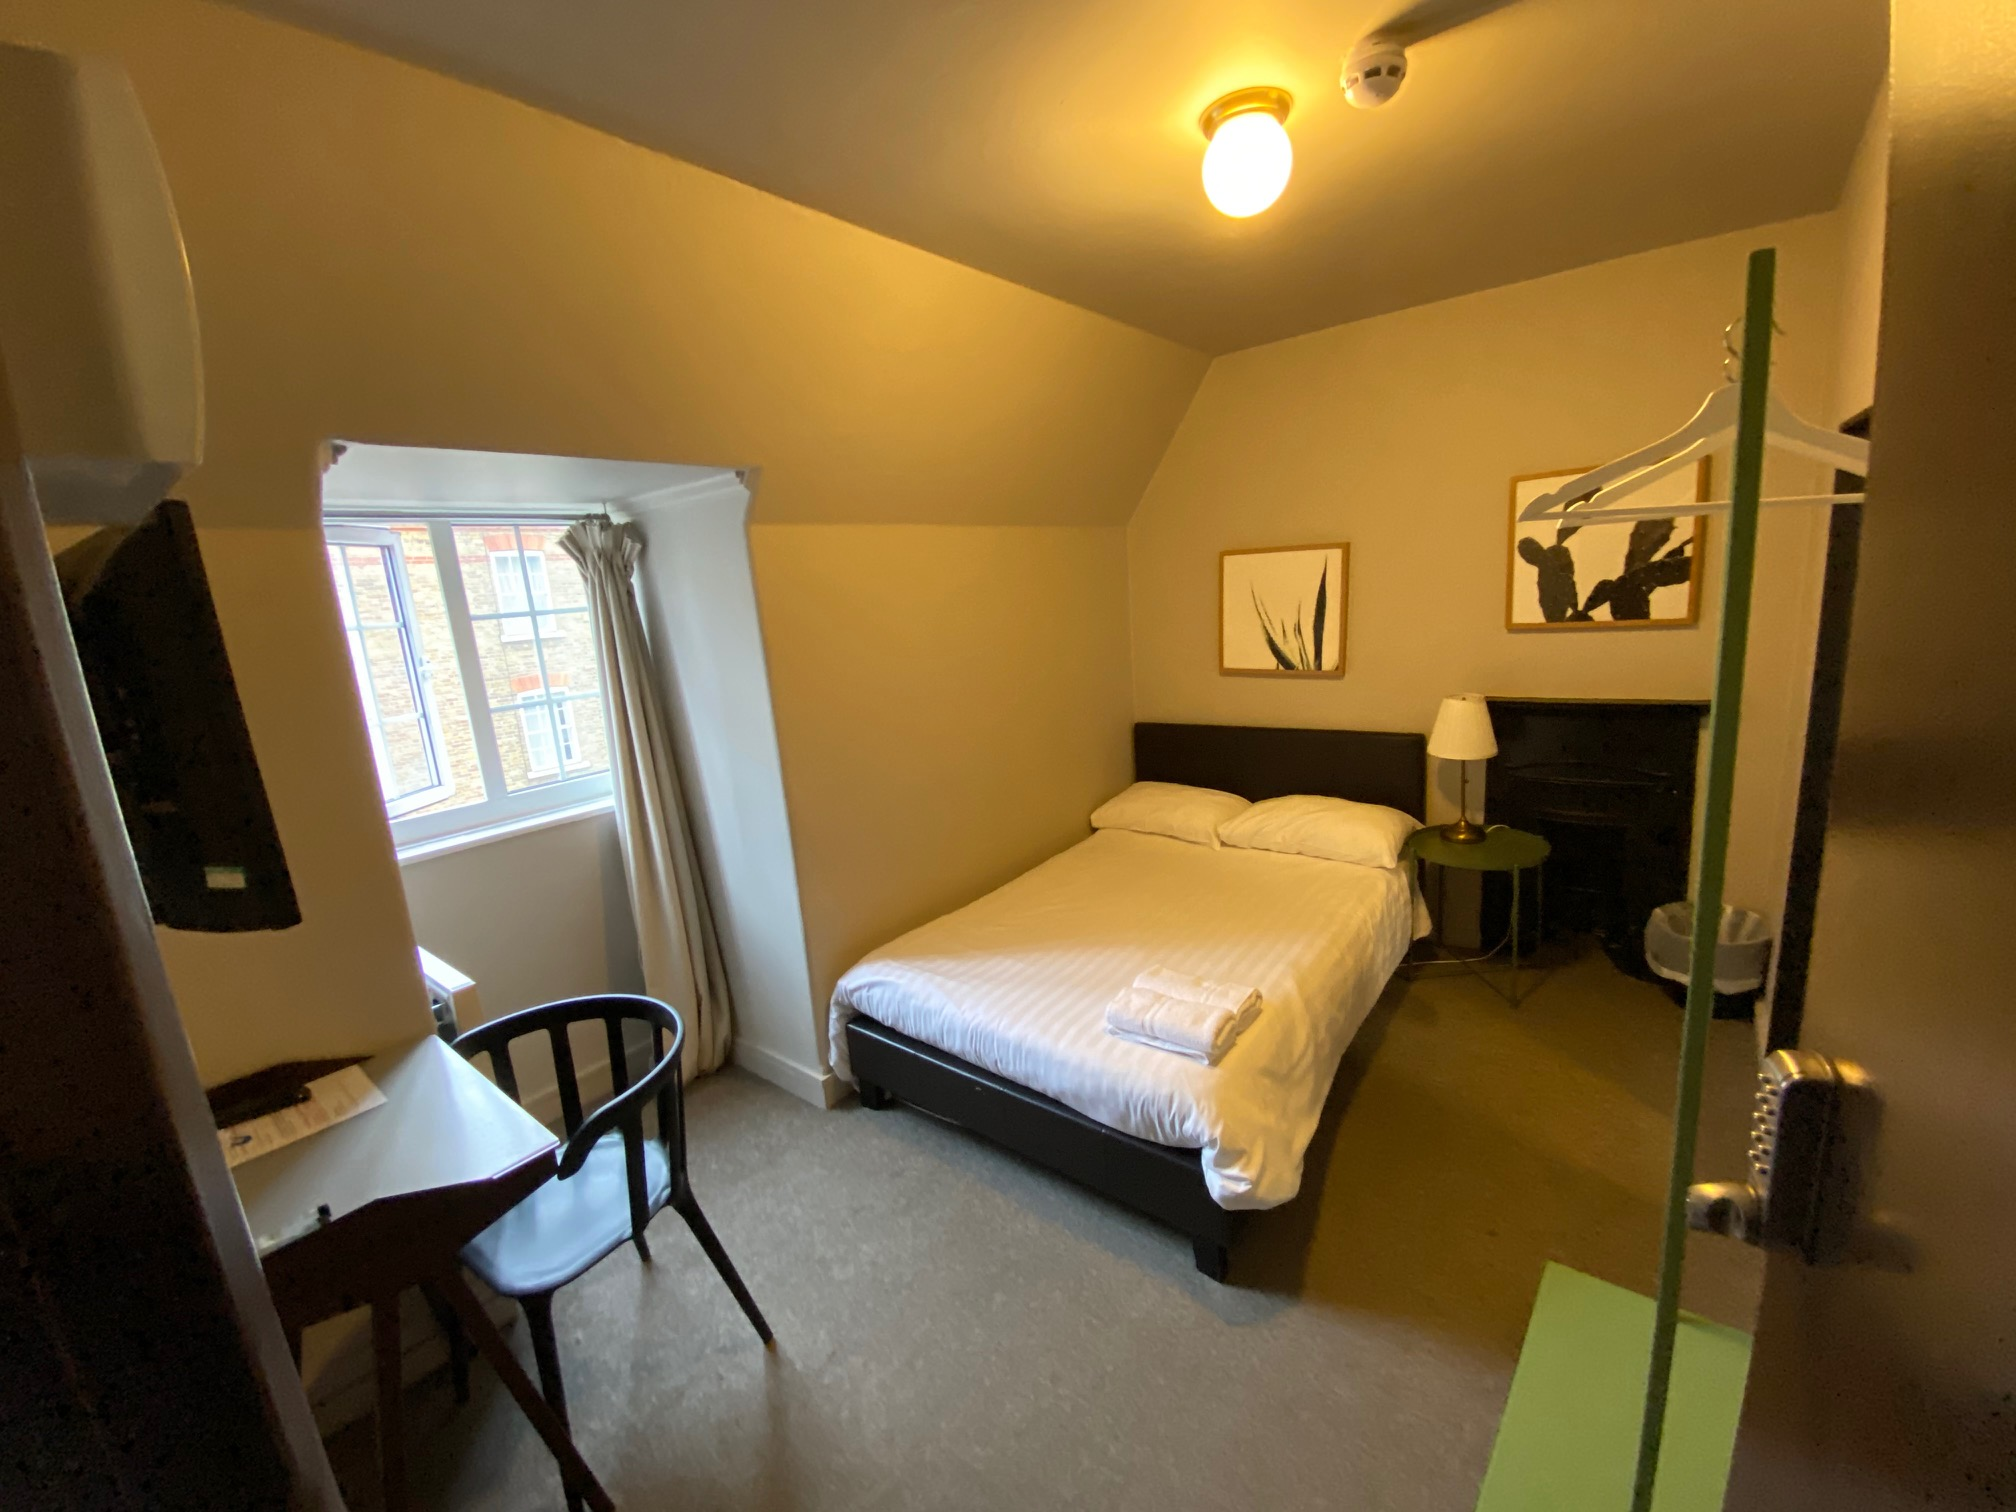 Photo 1, Single room - Monopoly p1 in London